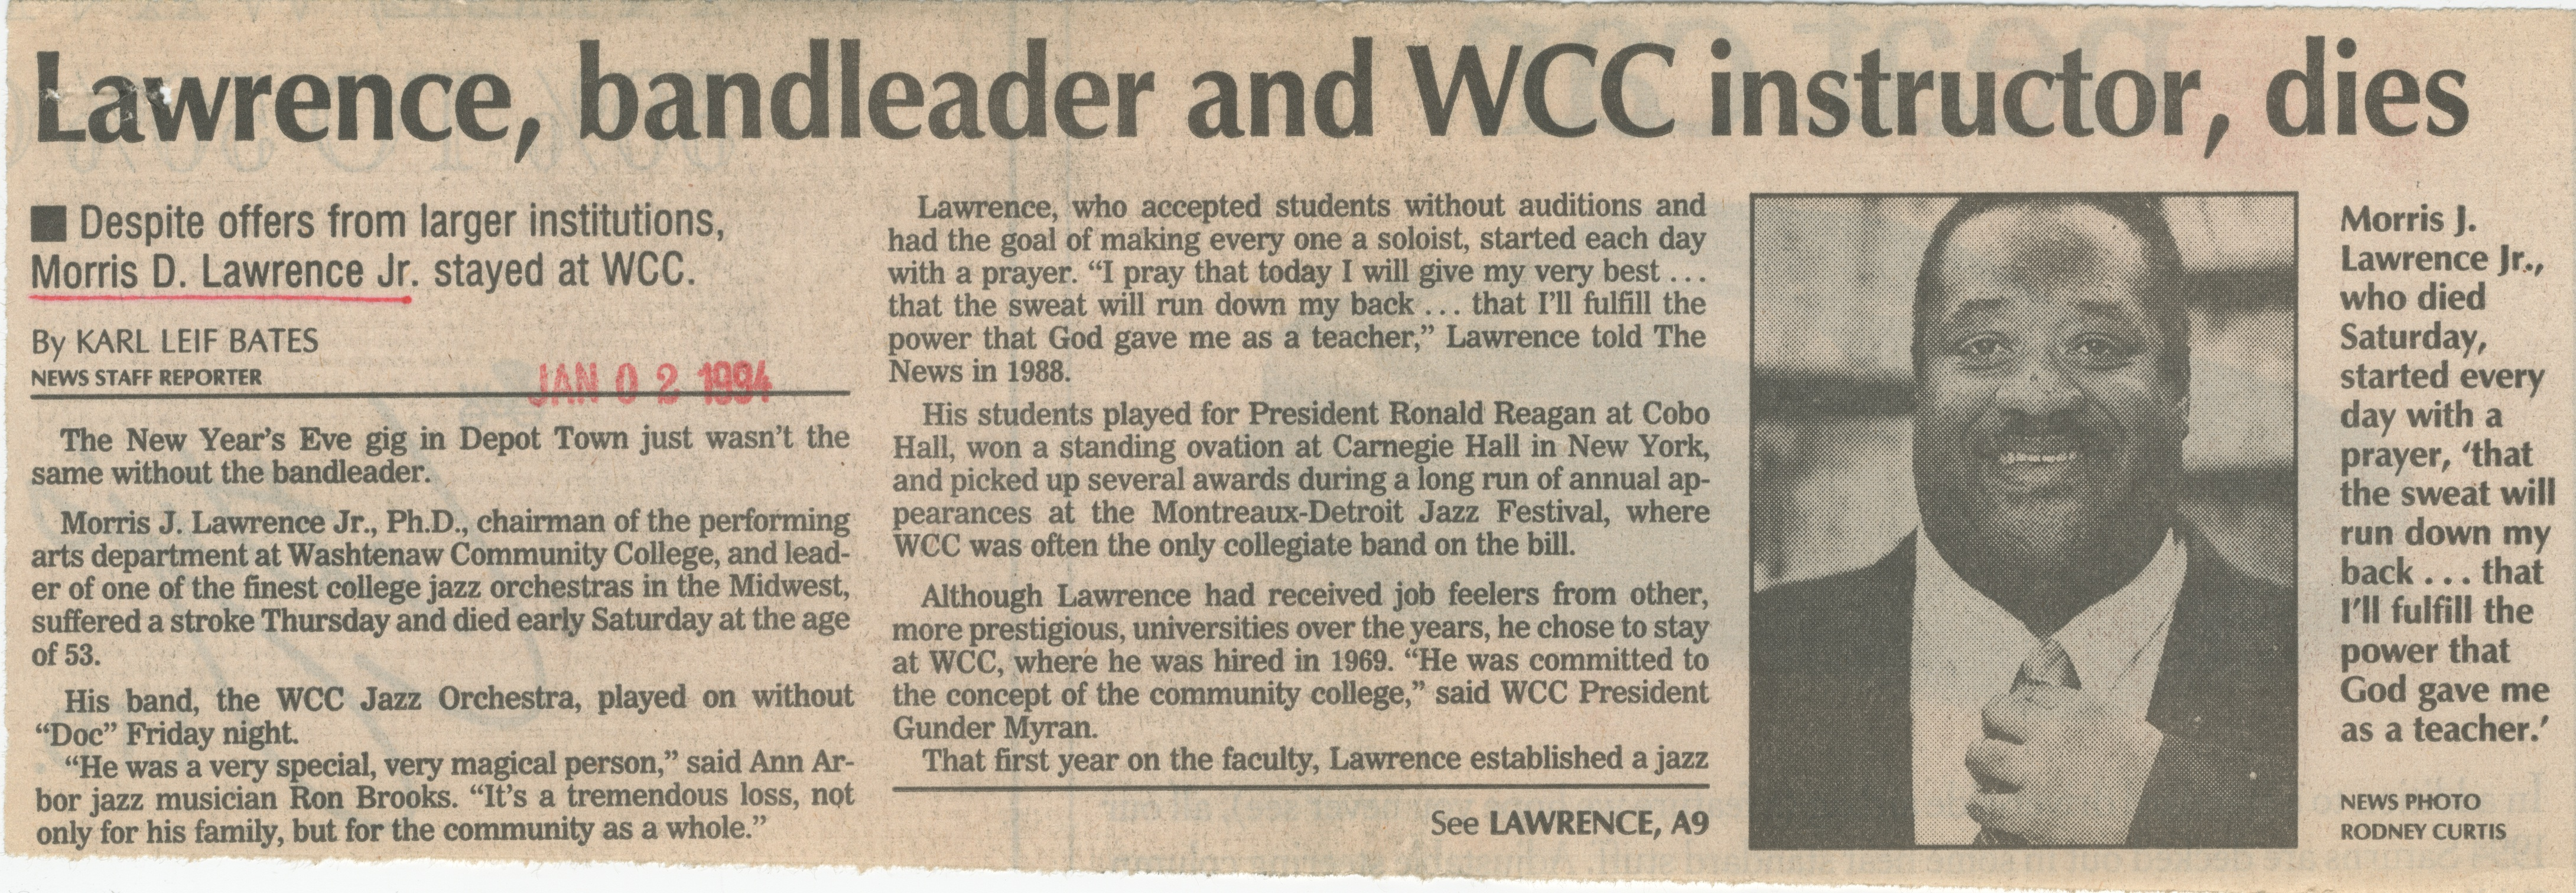 Lawrence, bandleader and WCC instructor, dies image